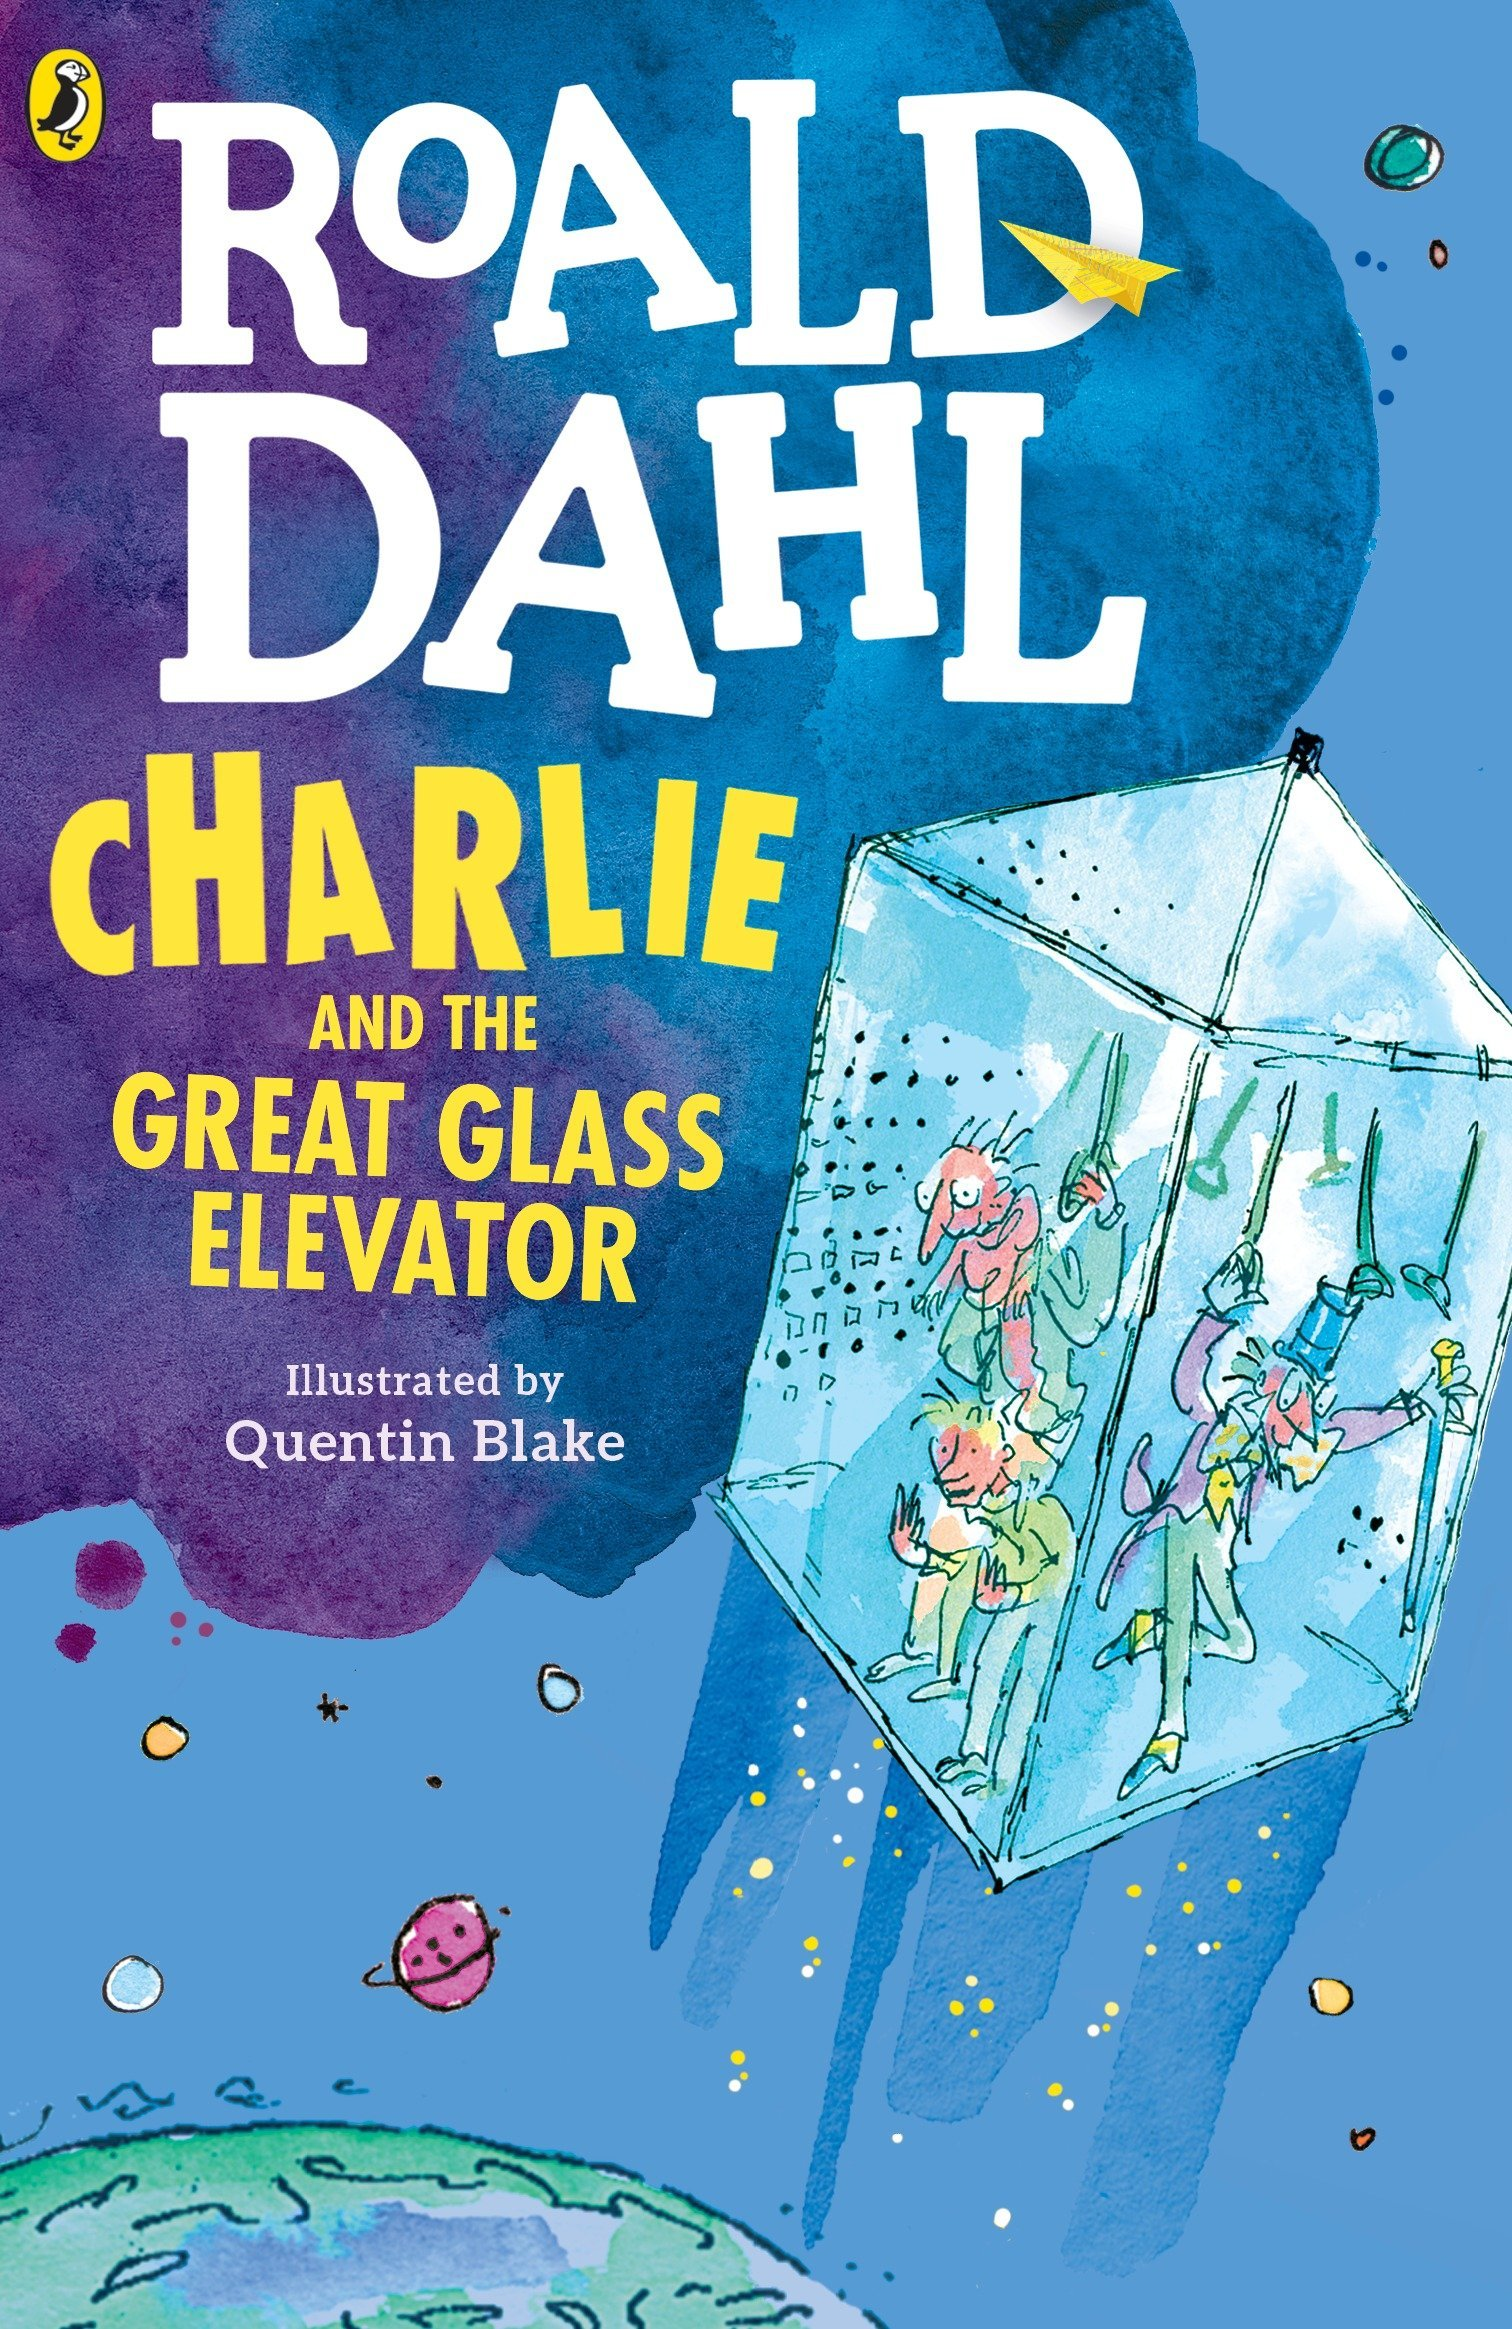 Charlie and the Great Glass Elevator: Dahl, Roald, Blake, Quentin:  9780142410325: Amazon.com: Books